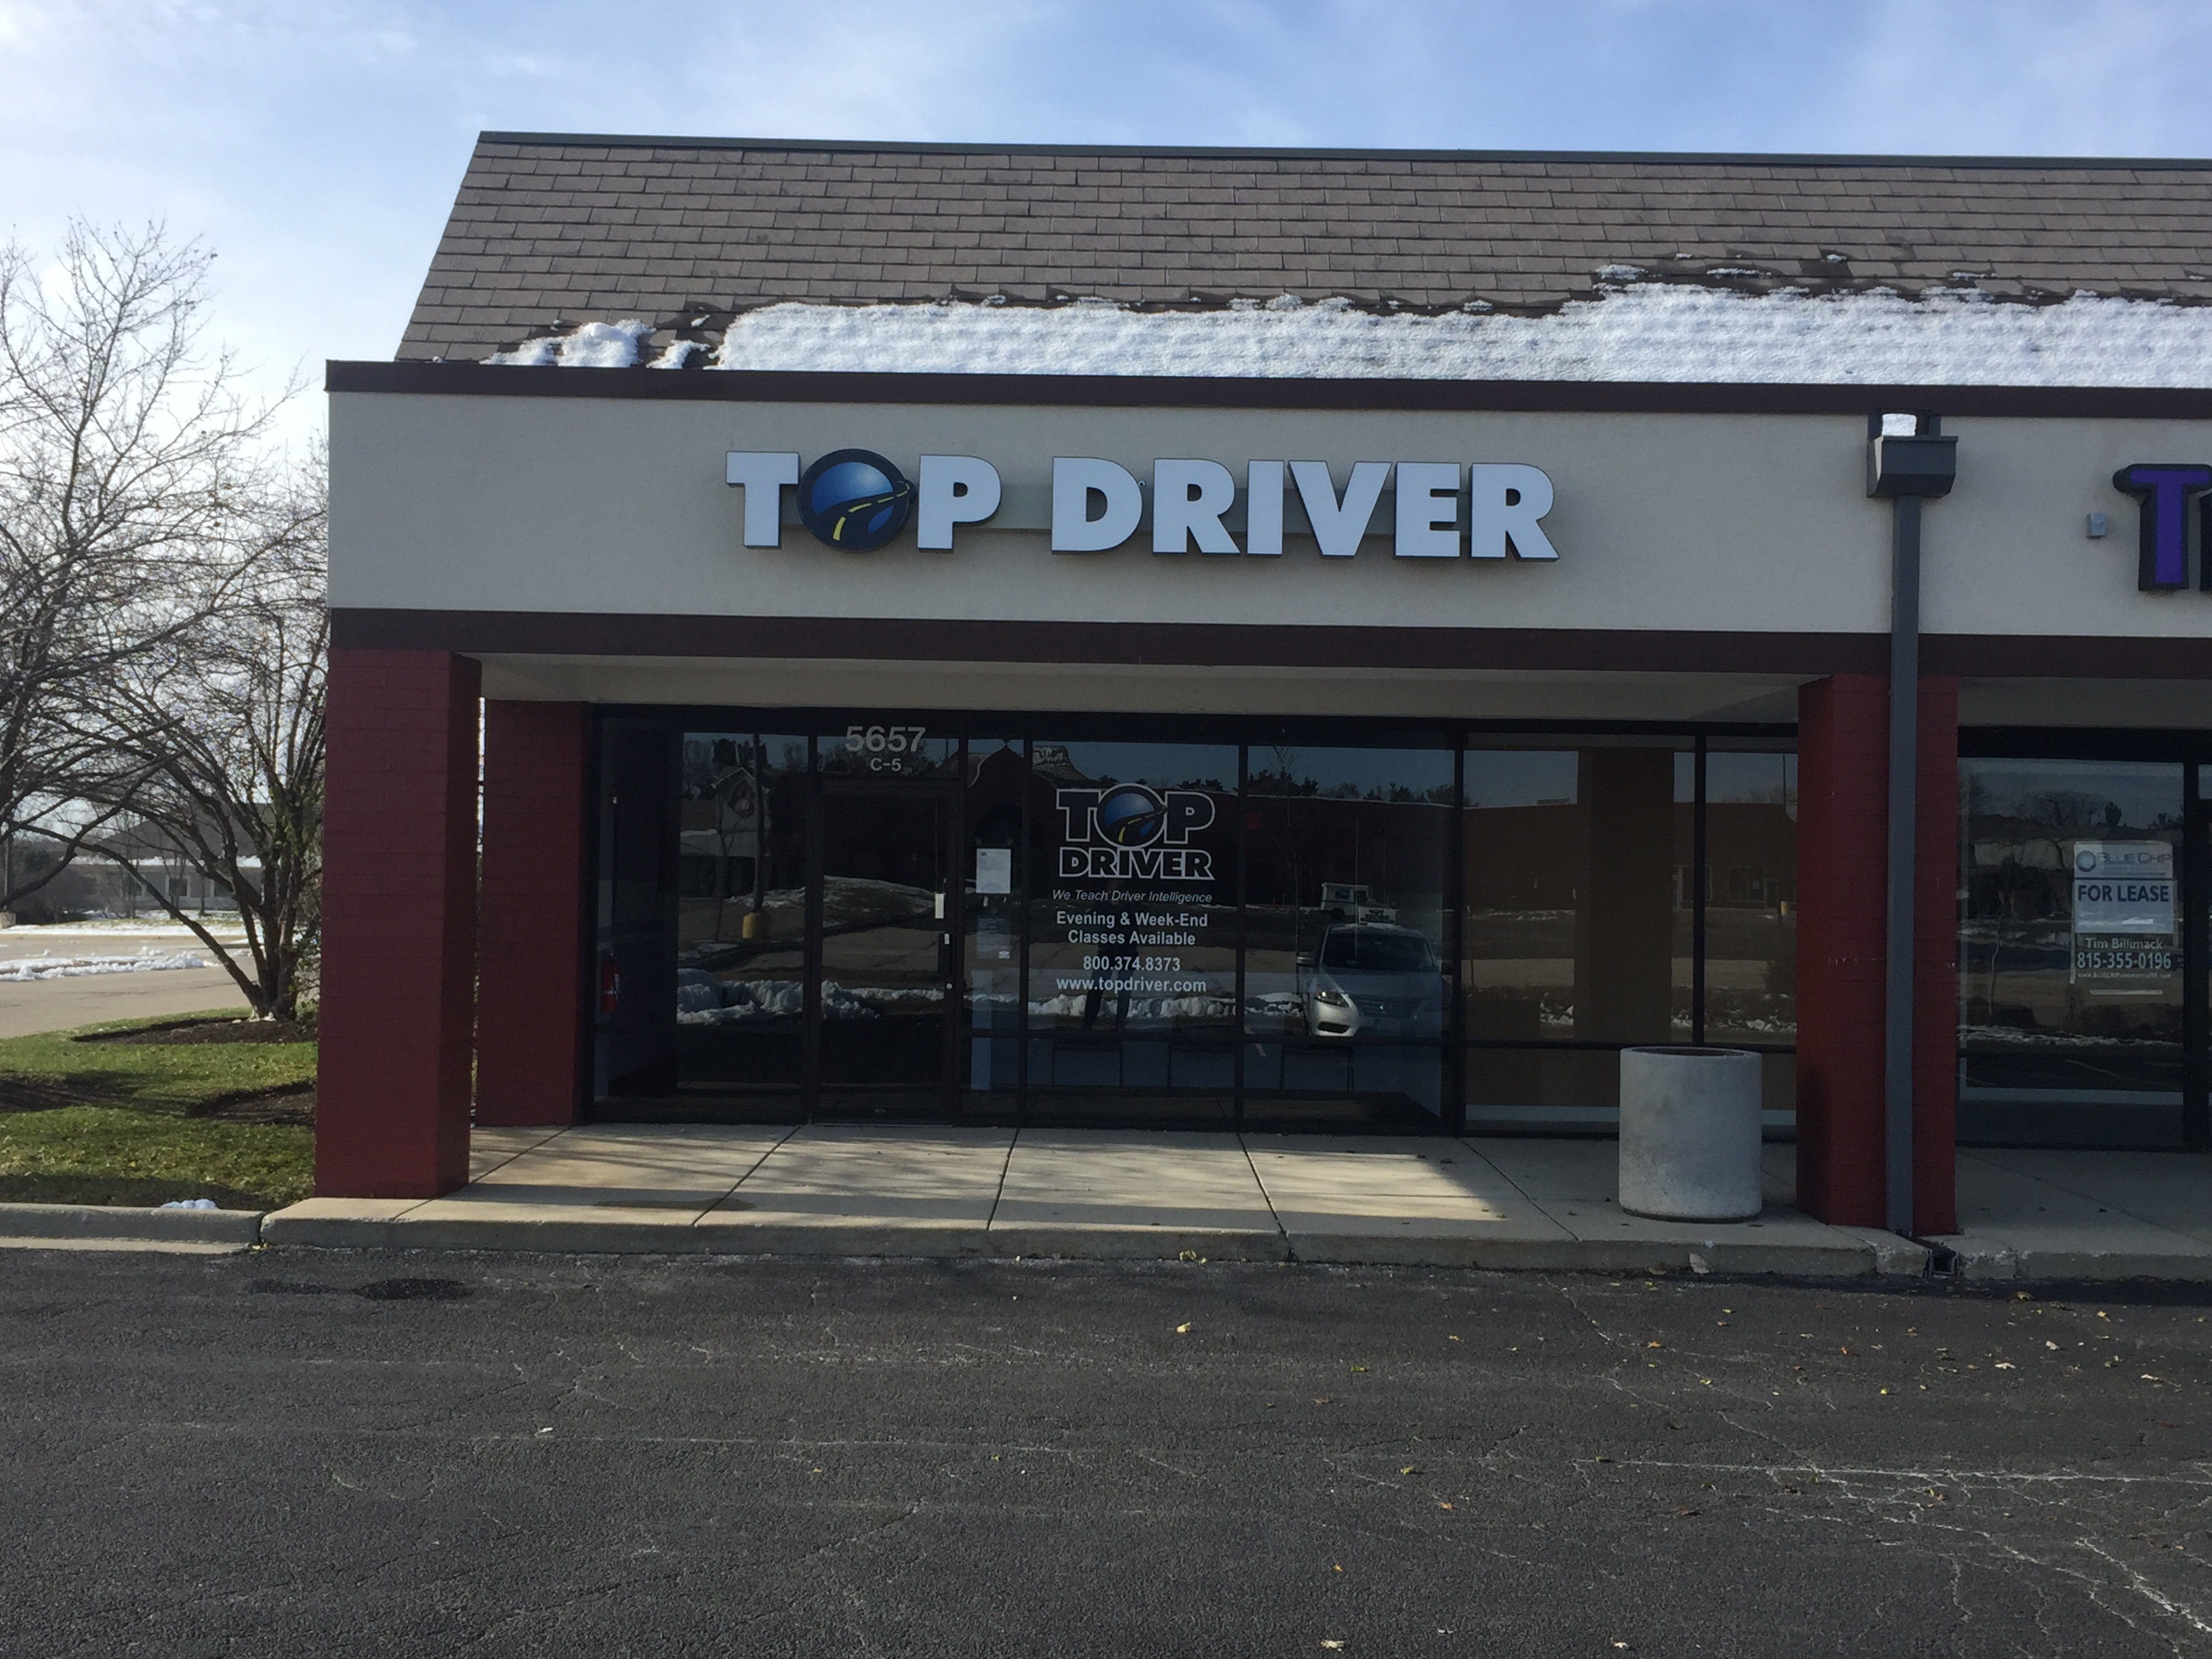 Top Driver Storefront in Crystal Lake, IL.